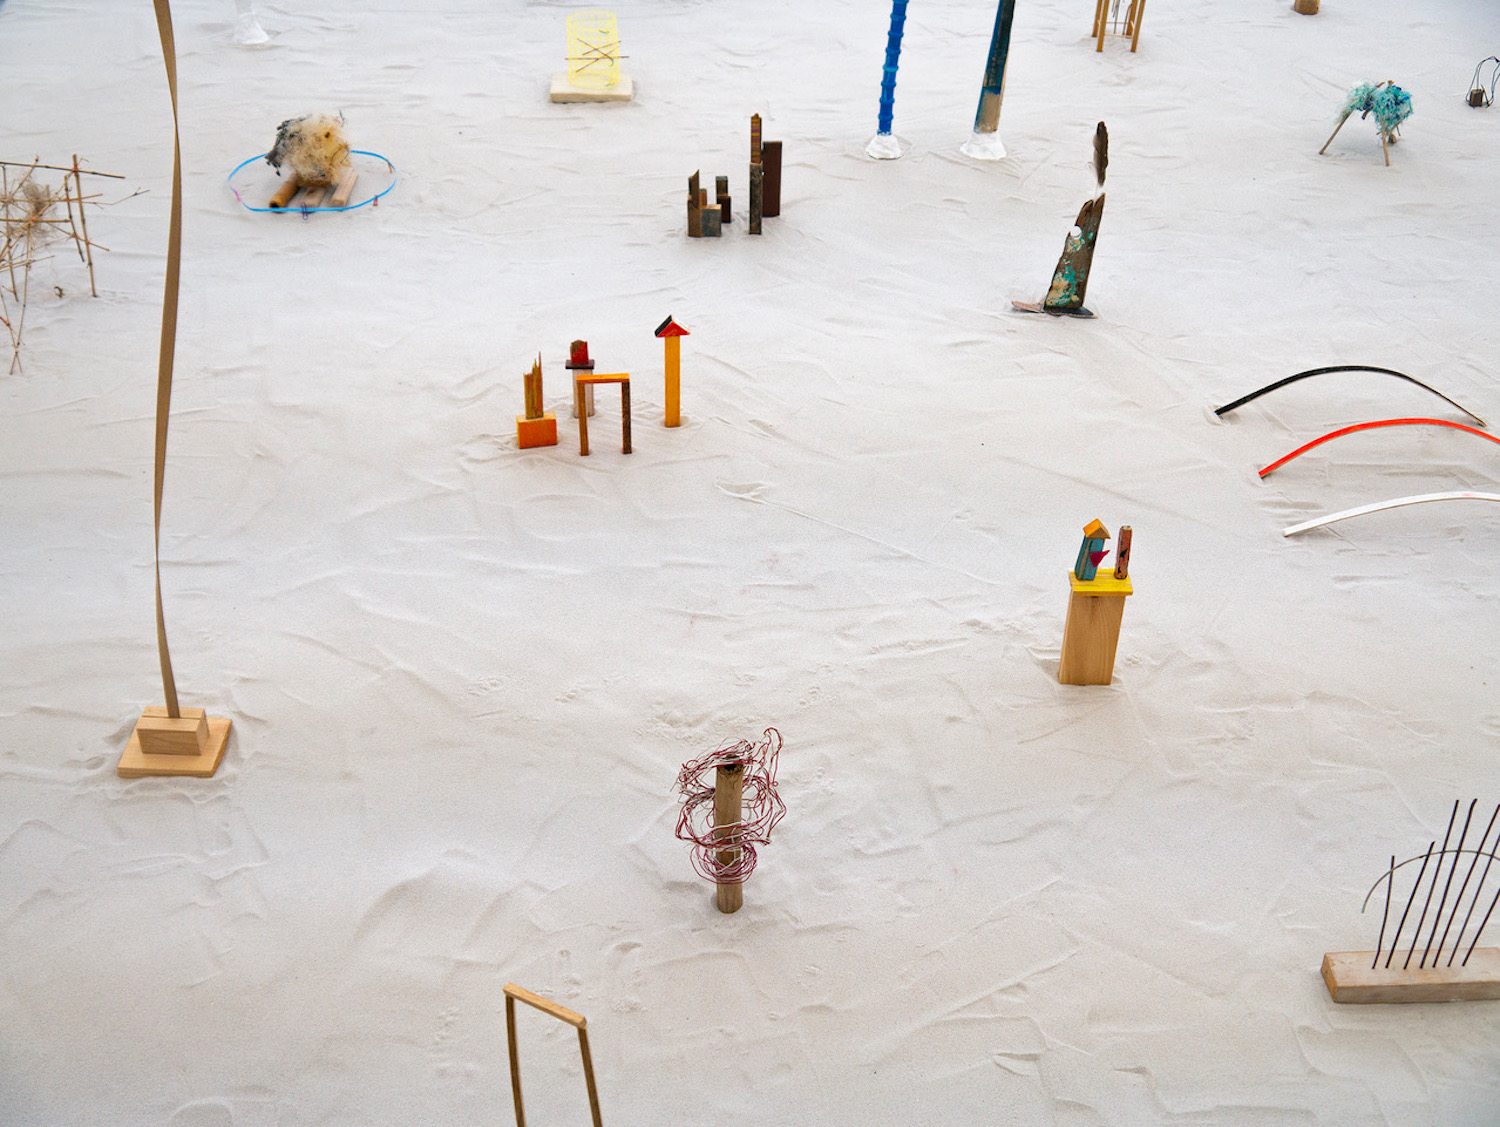 Cecilia Vicuña, Precarios, installation view, Witte de With Center for Contemporary Art, 2019 / Adam Patterson